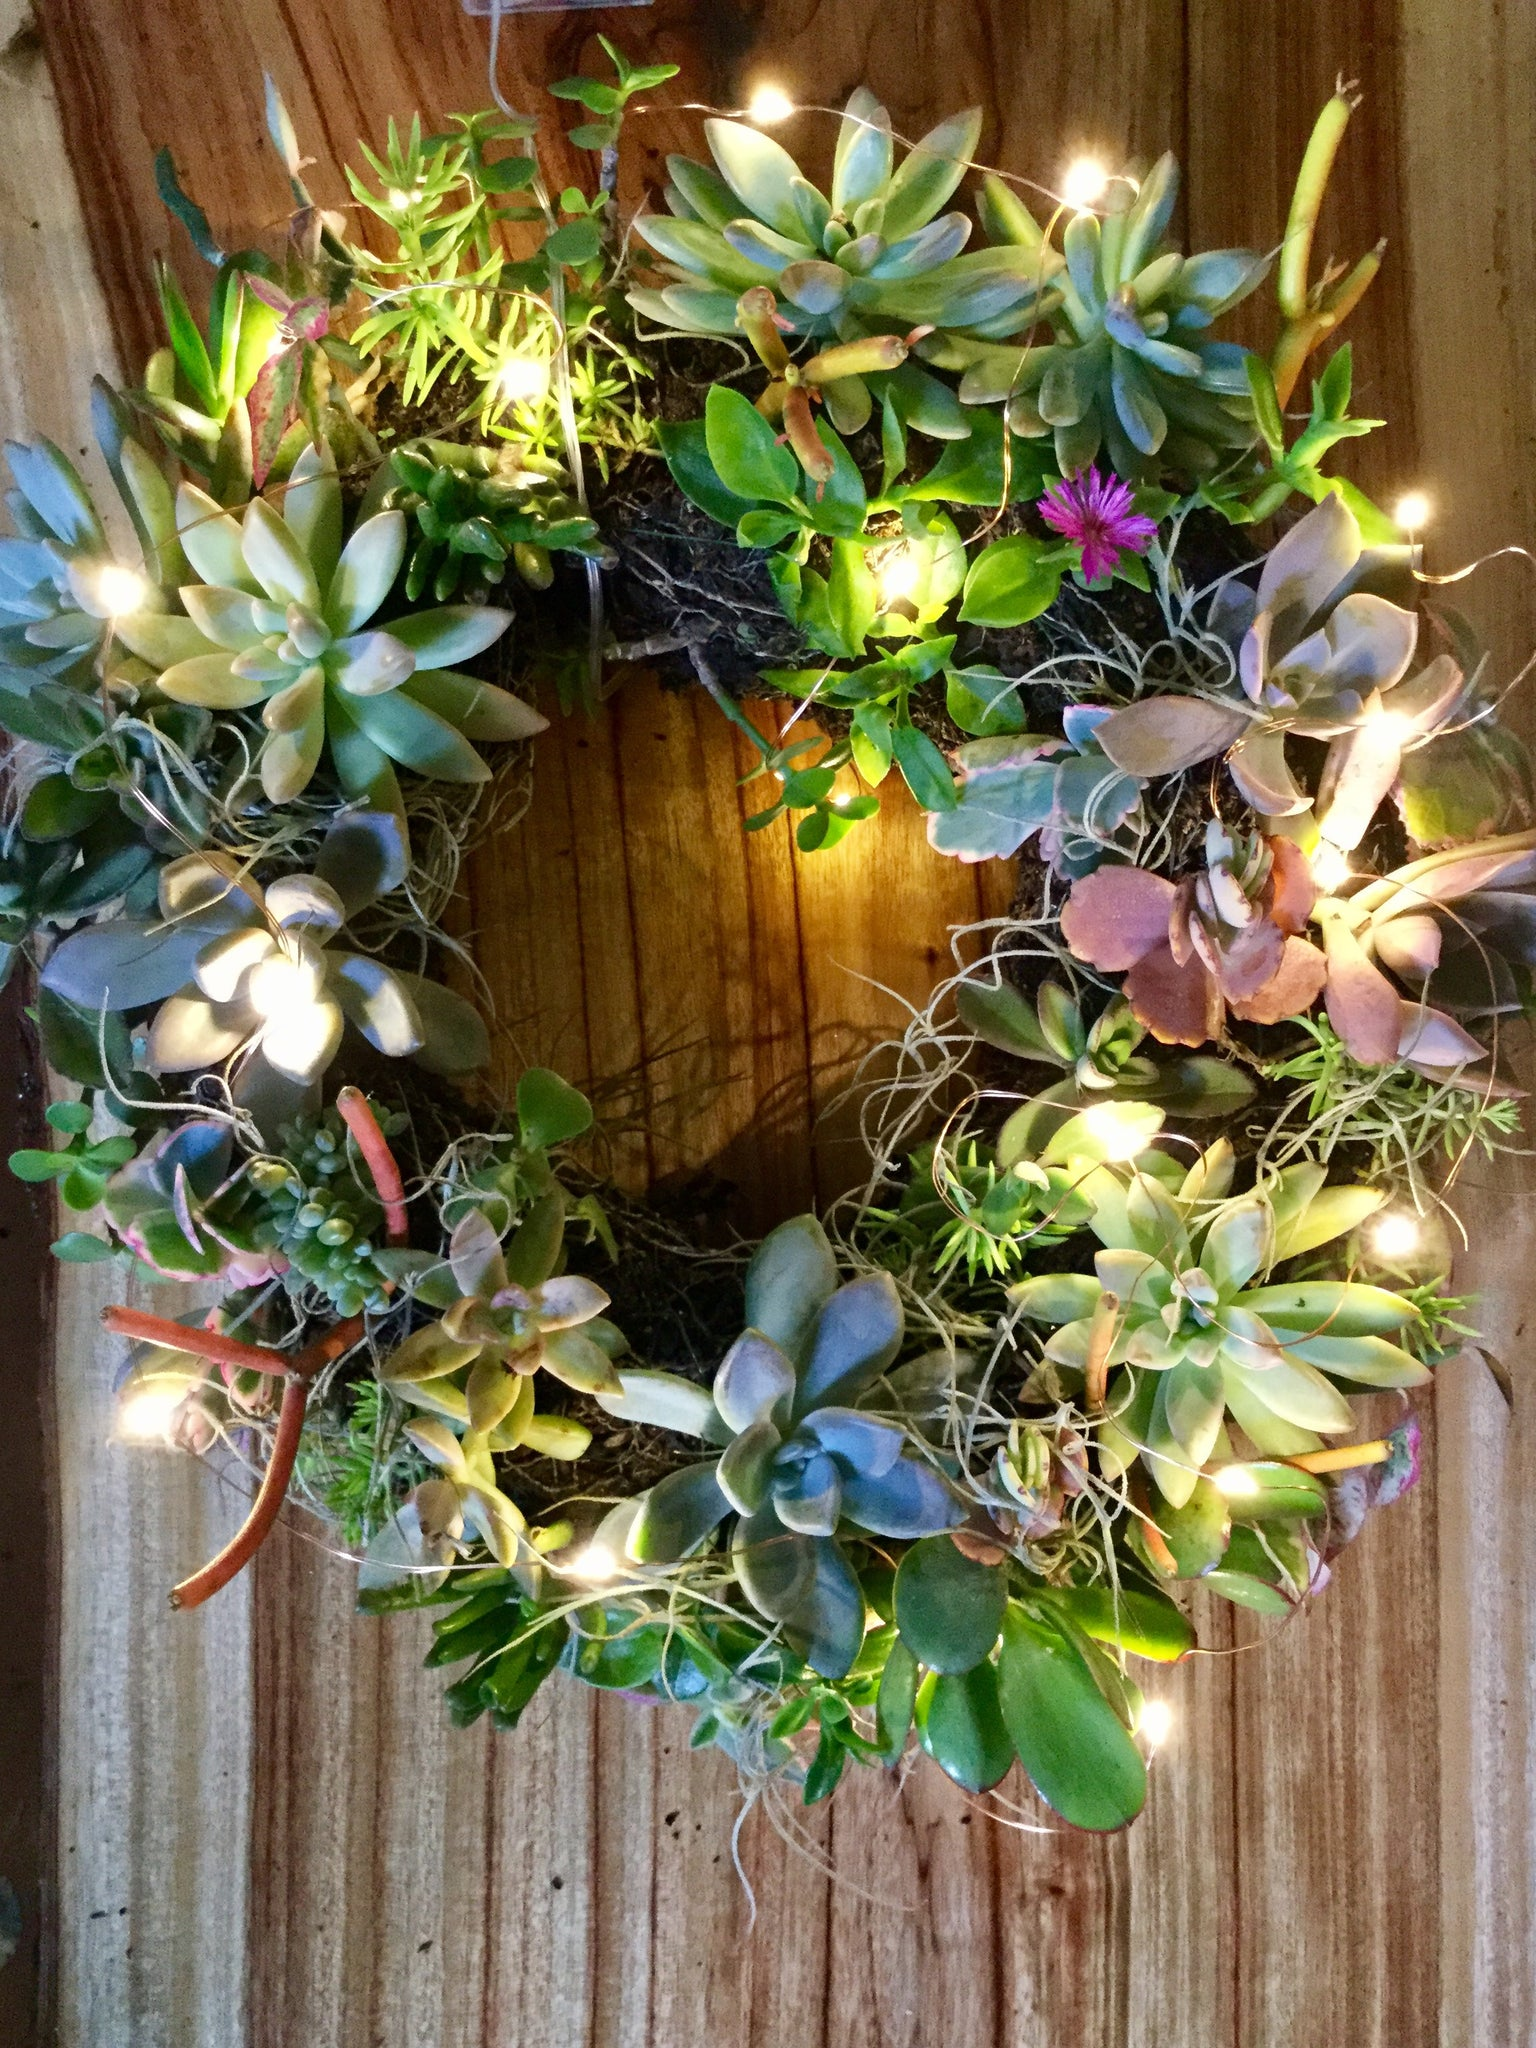 Succulent Heart Shaped Wreath - Febuary 11